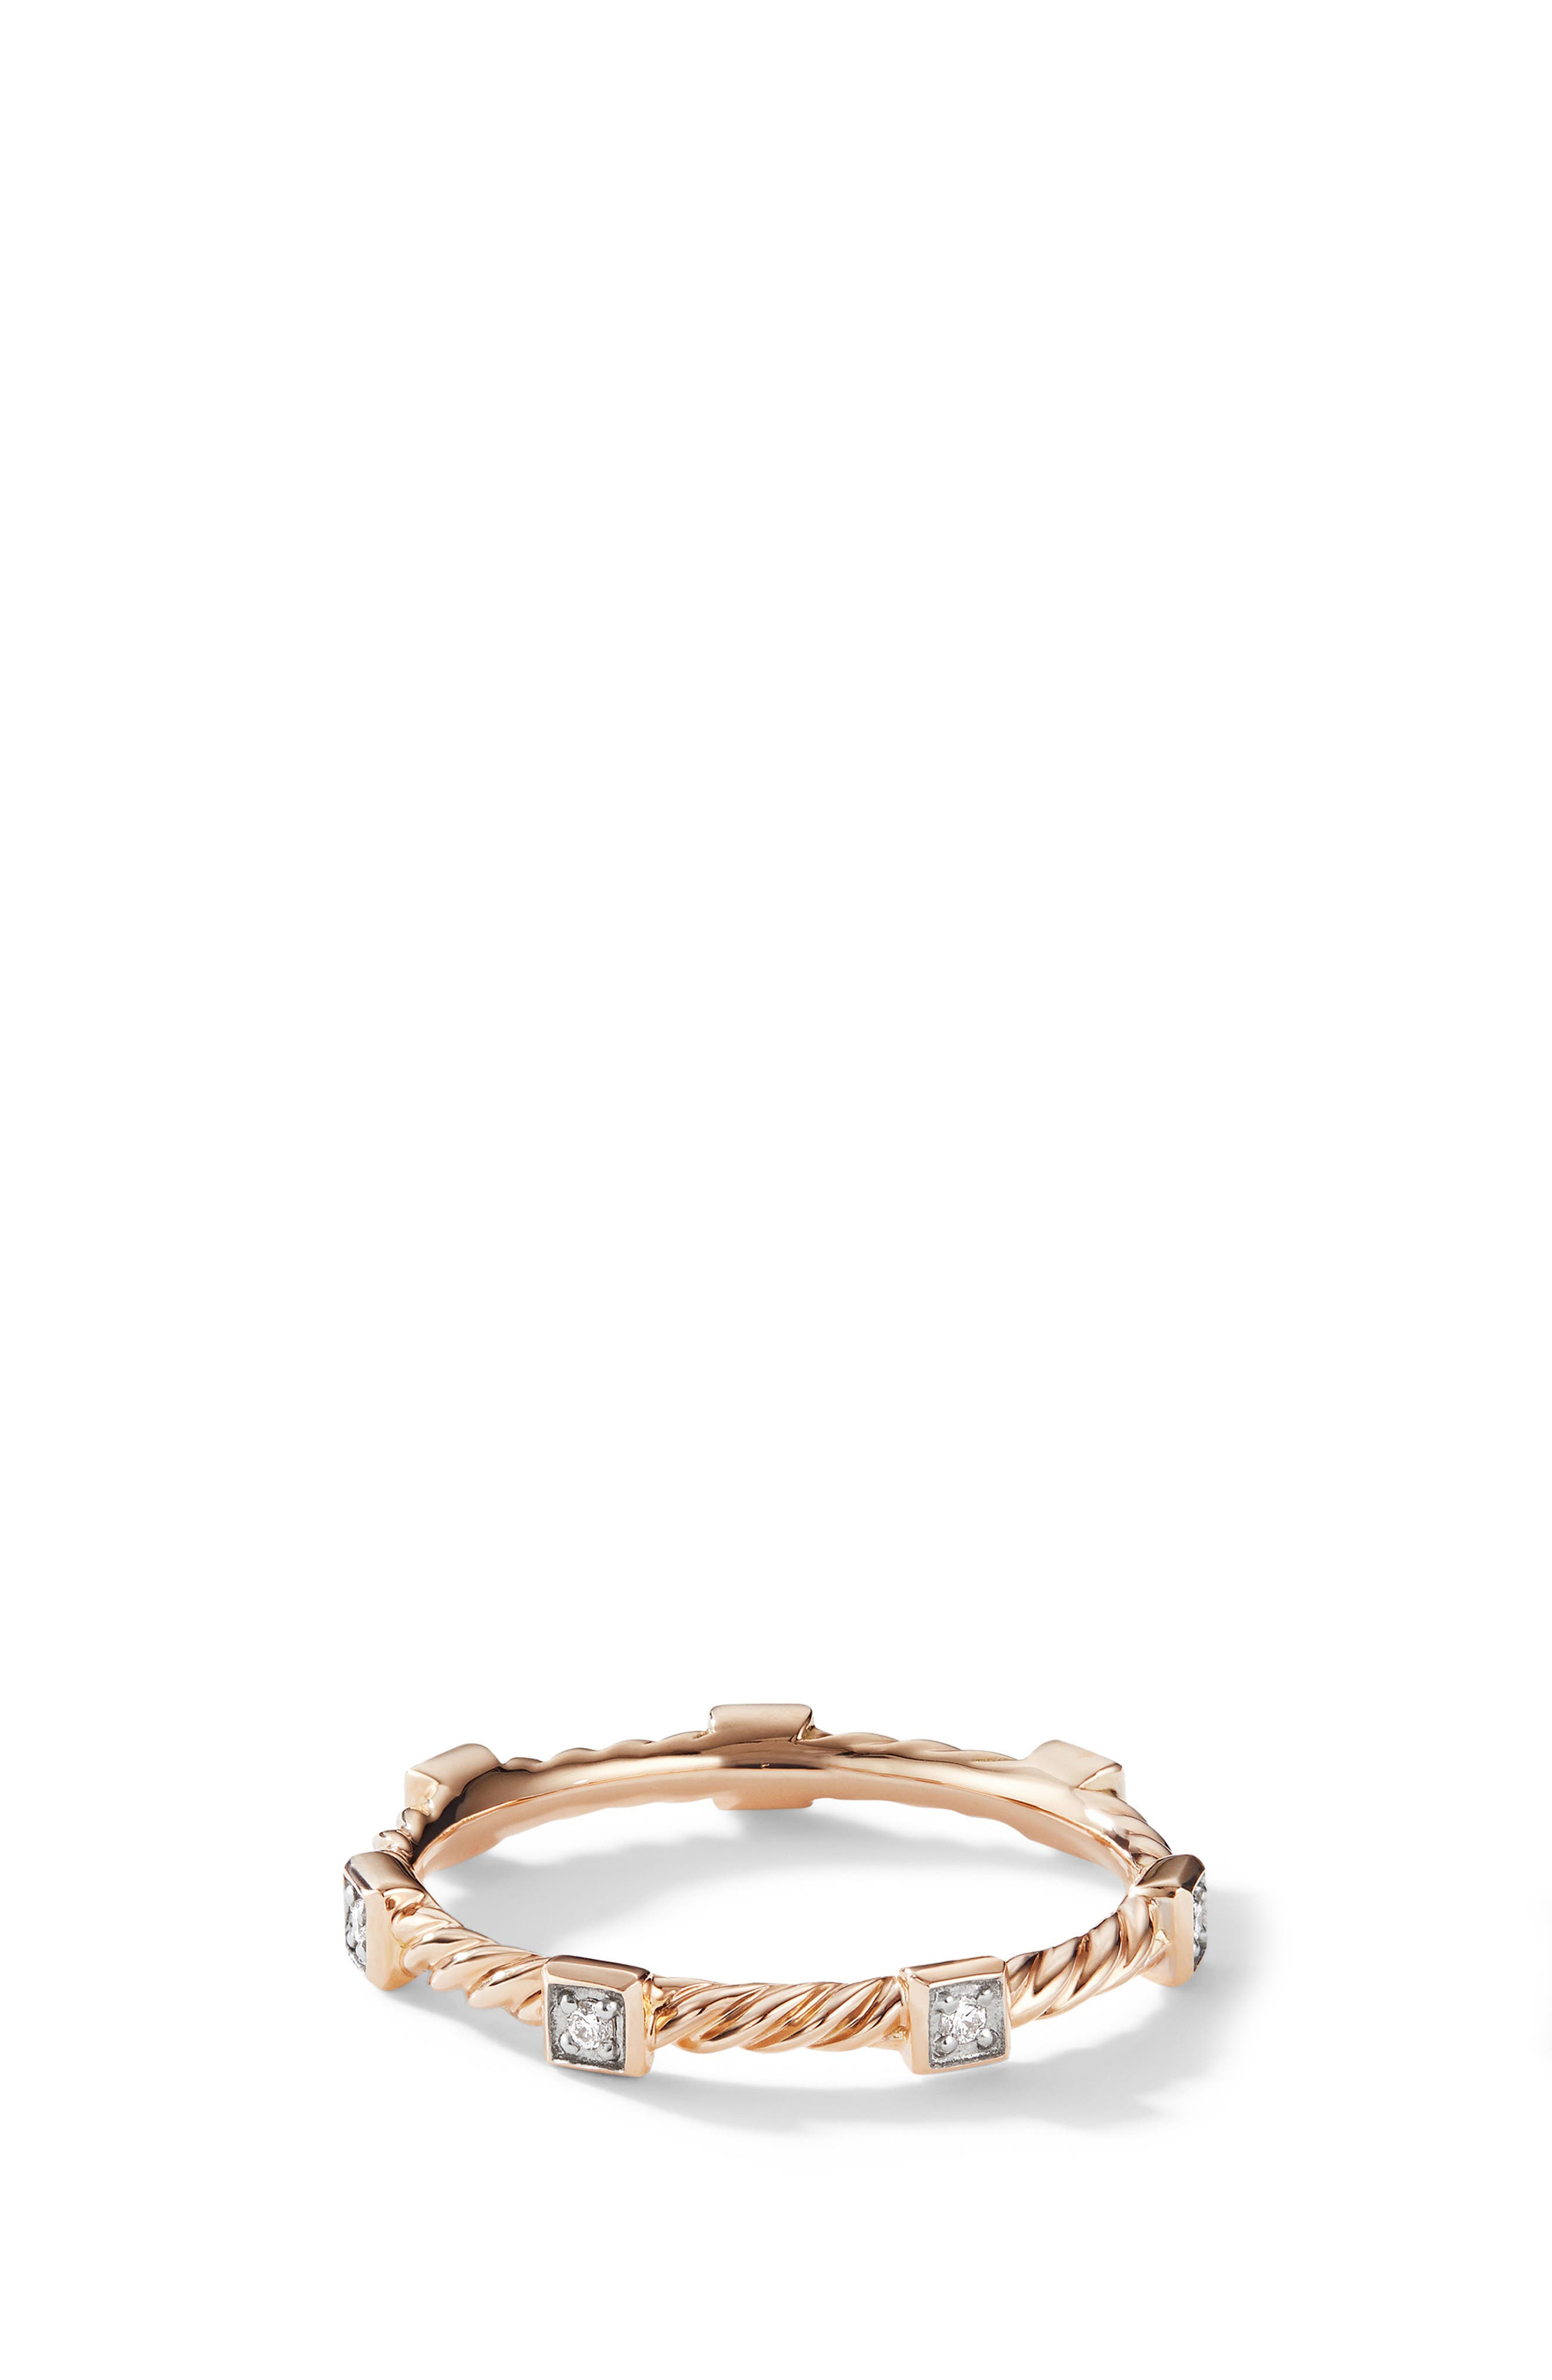 Cable Stack Ring in 18K Rose Gold with Diamonds,                             Main thumbnail 1, color,                             ROSE GOLD/ DIAMOND